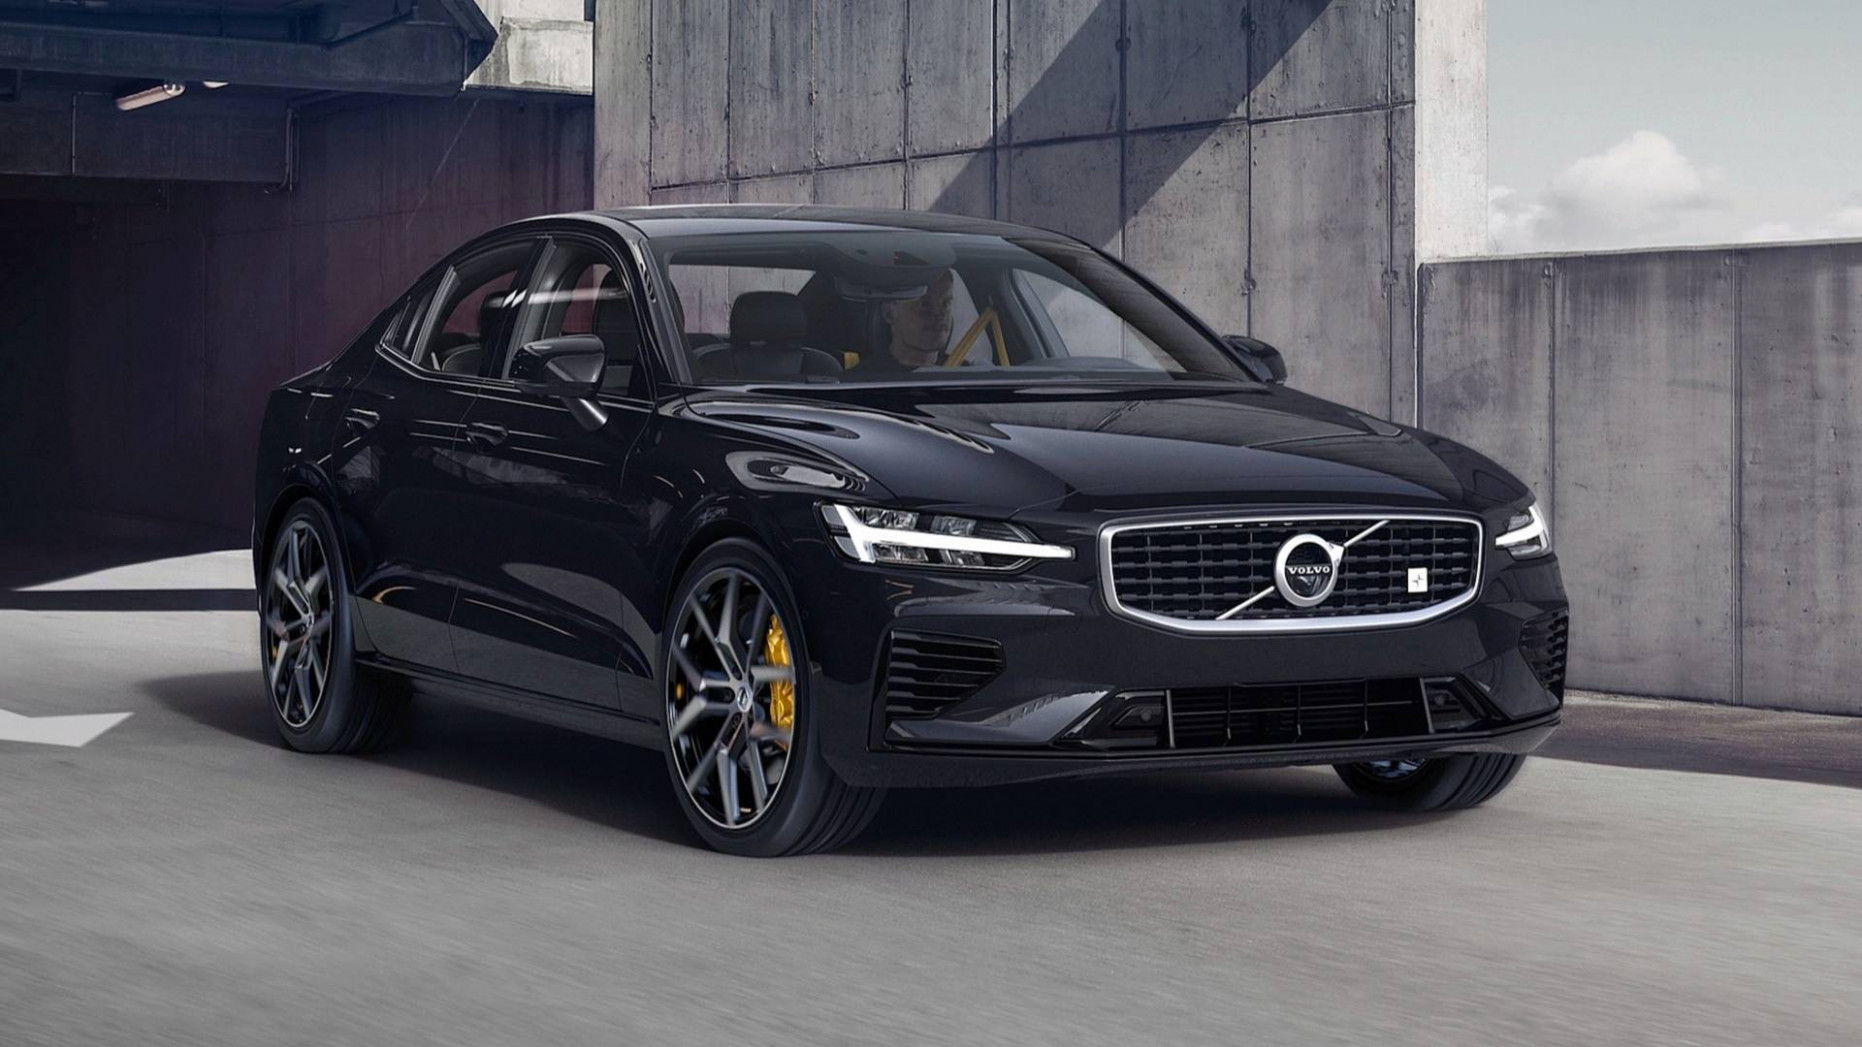 Volvo S11 Polestar Engineered Limited To 11 Examples In U.S